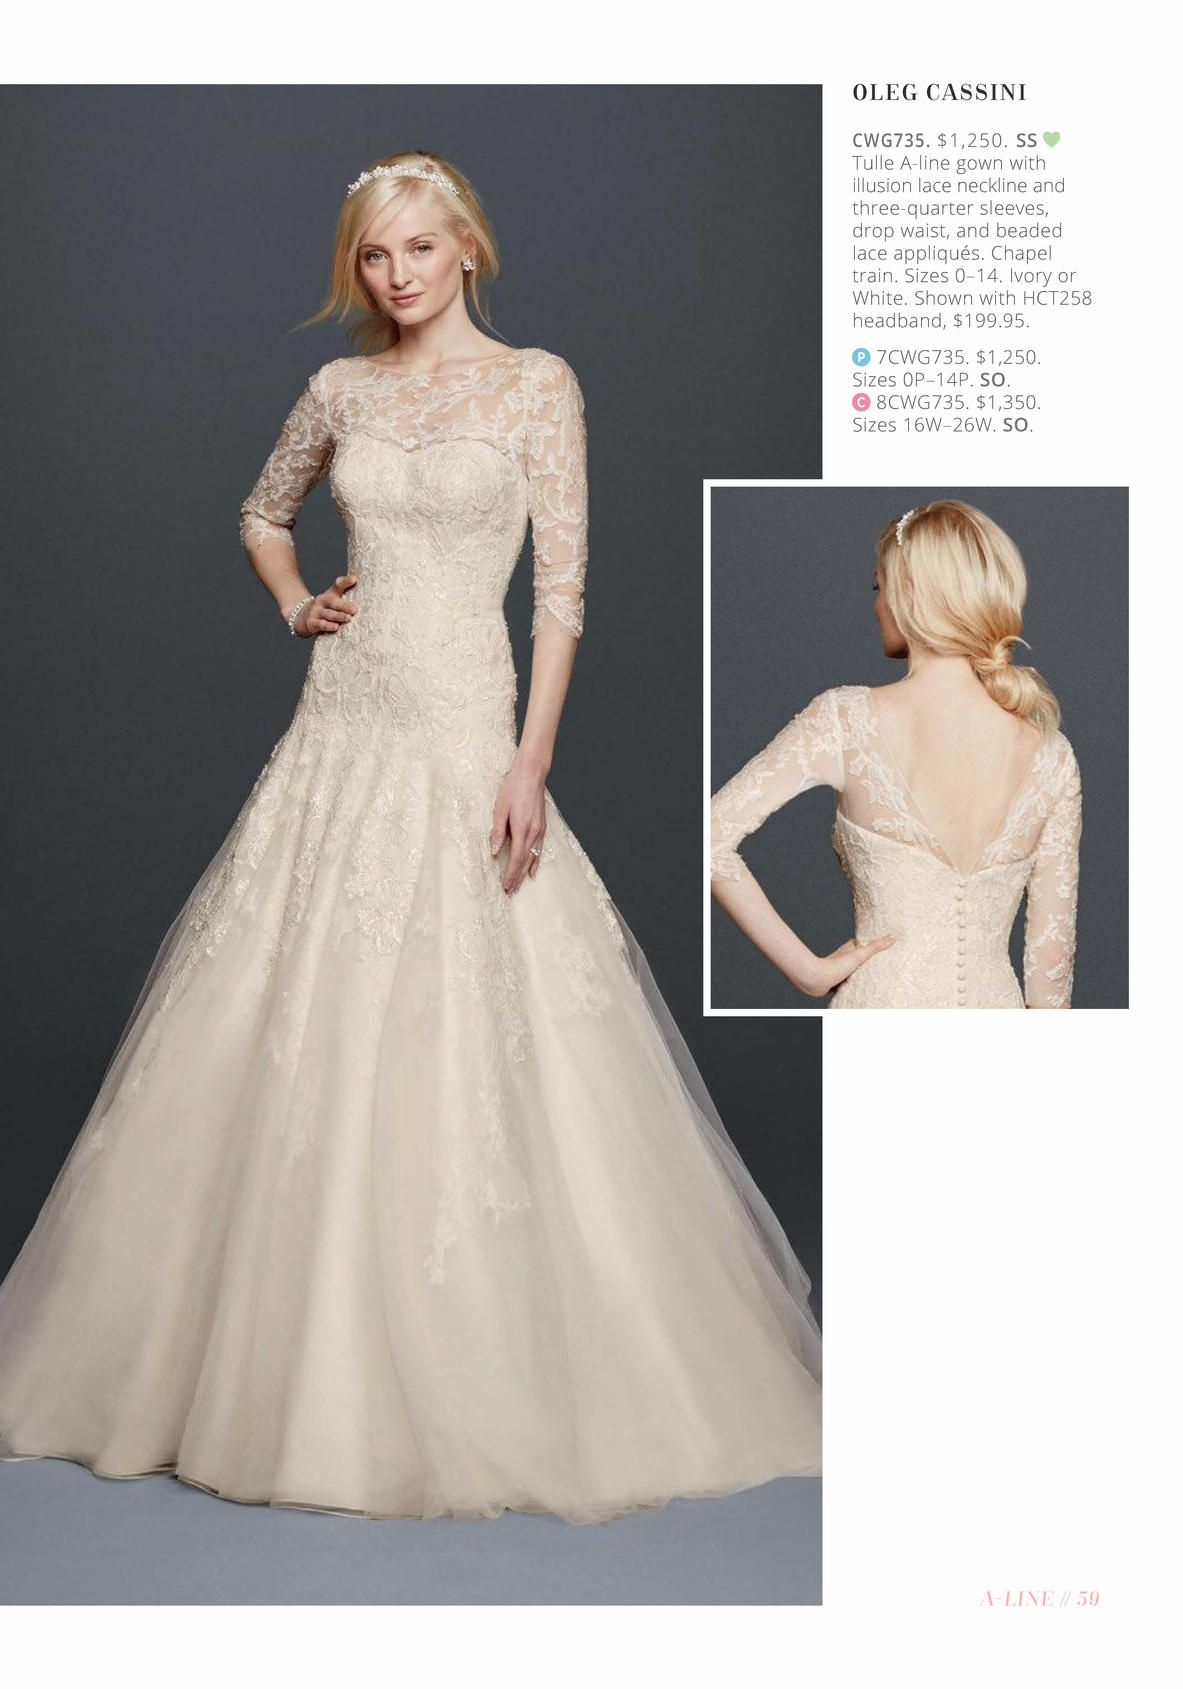 c703f56a339c David's Bridal Online Catalog I love the back of the dress. not the front